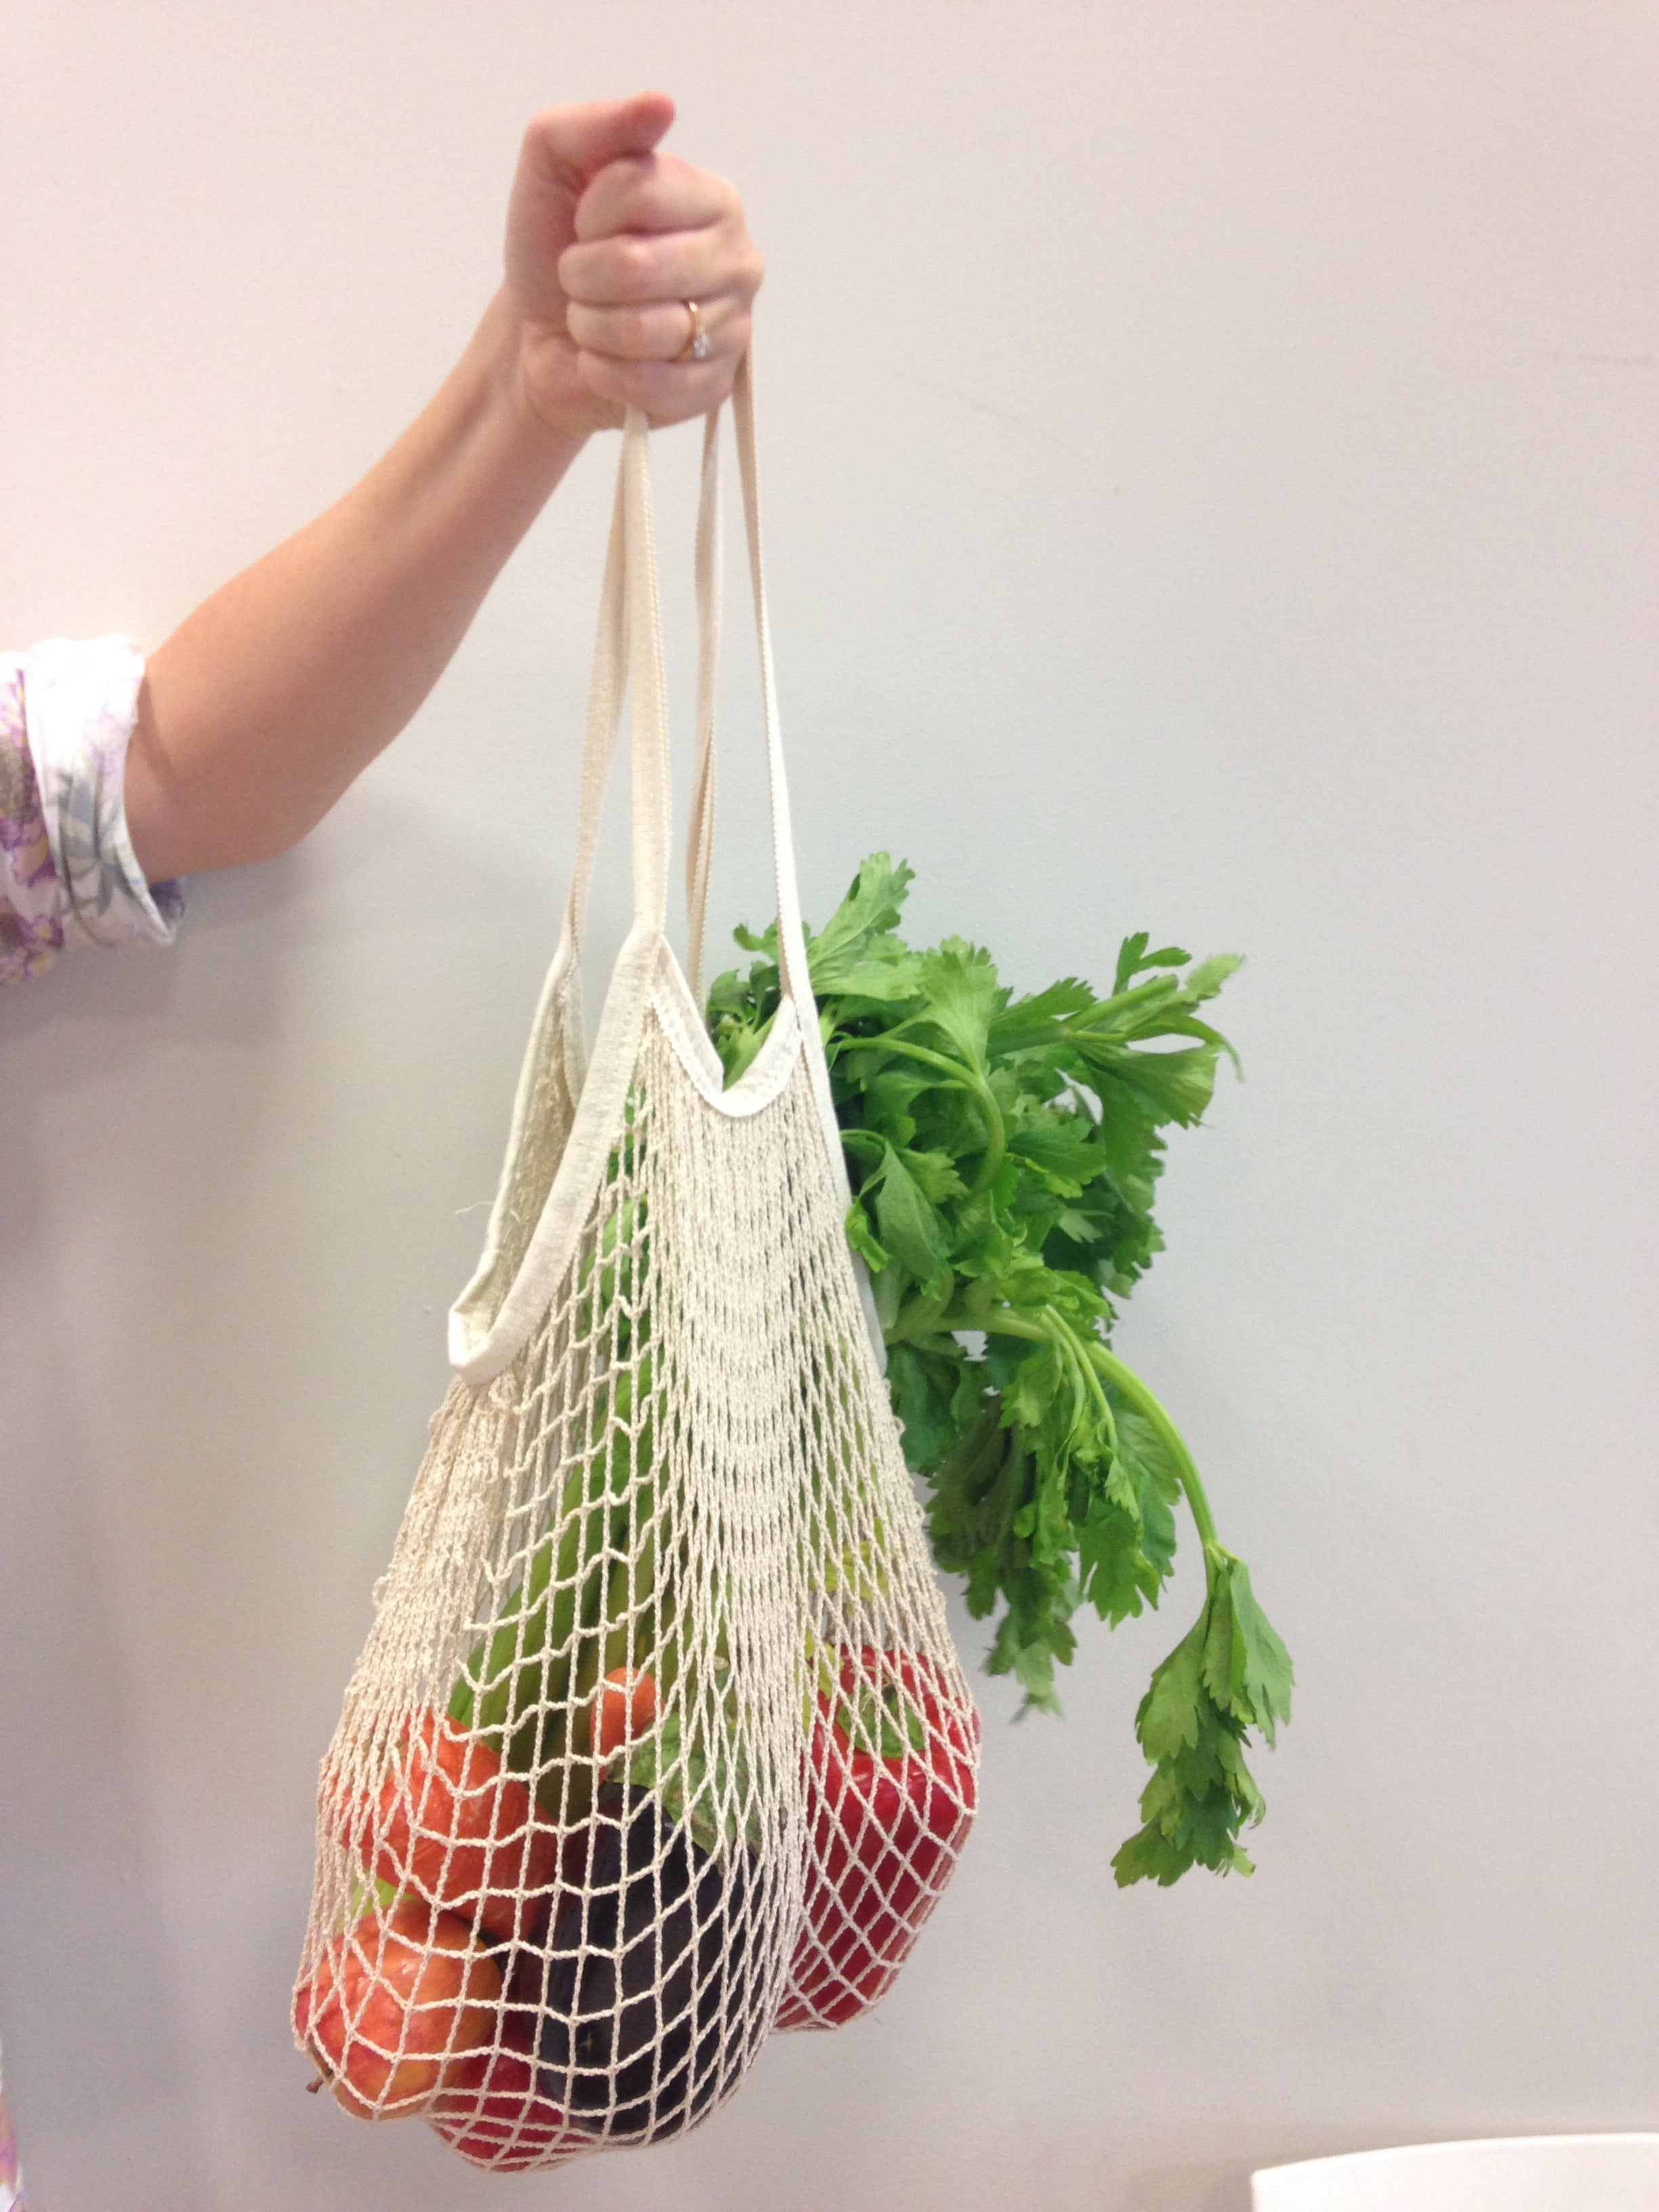 woman's arm holding an organic cotton produce bag containing fresh vegetables